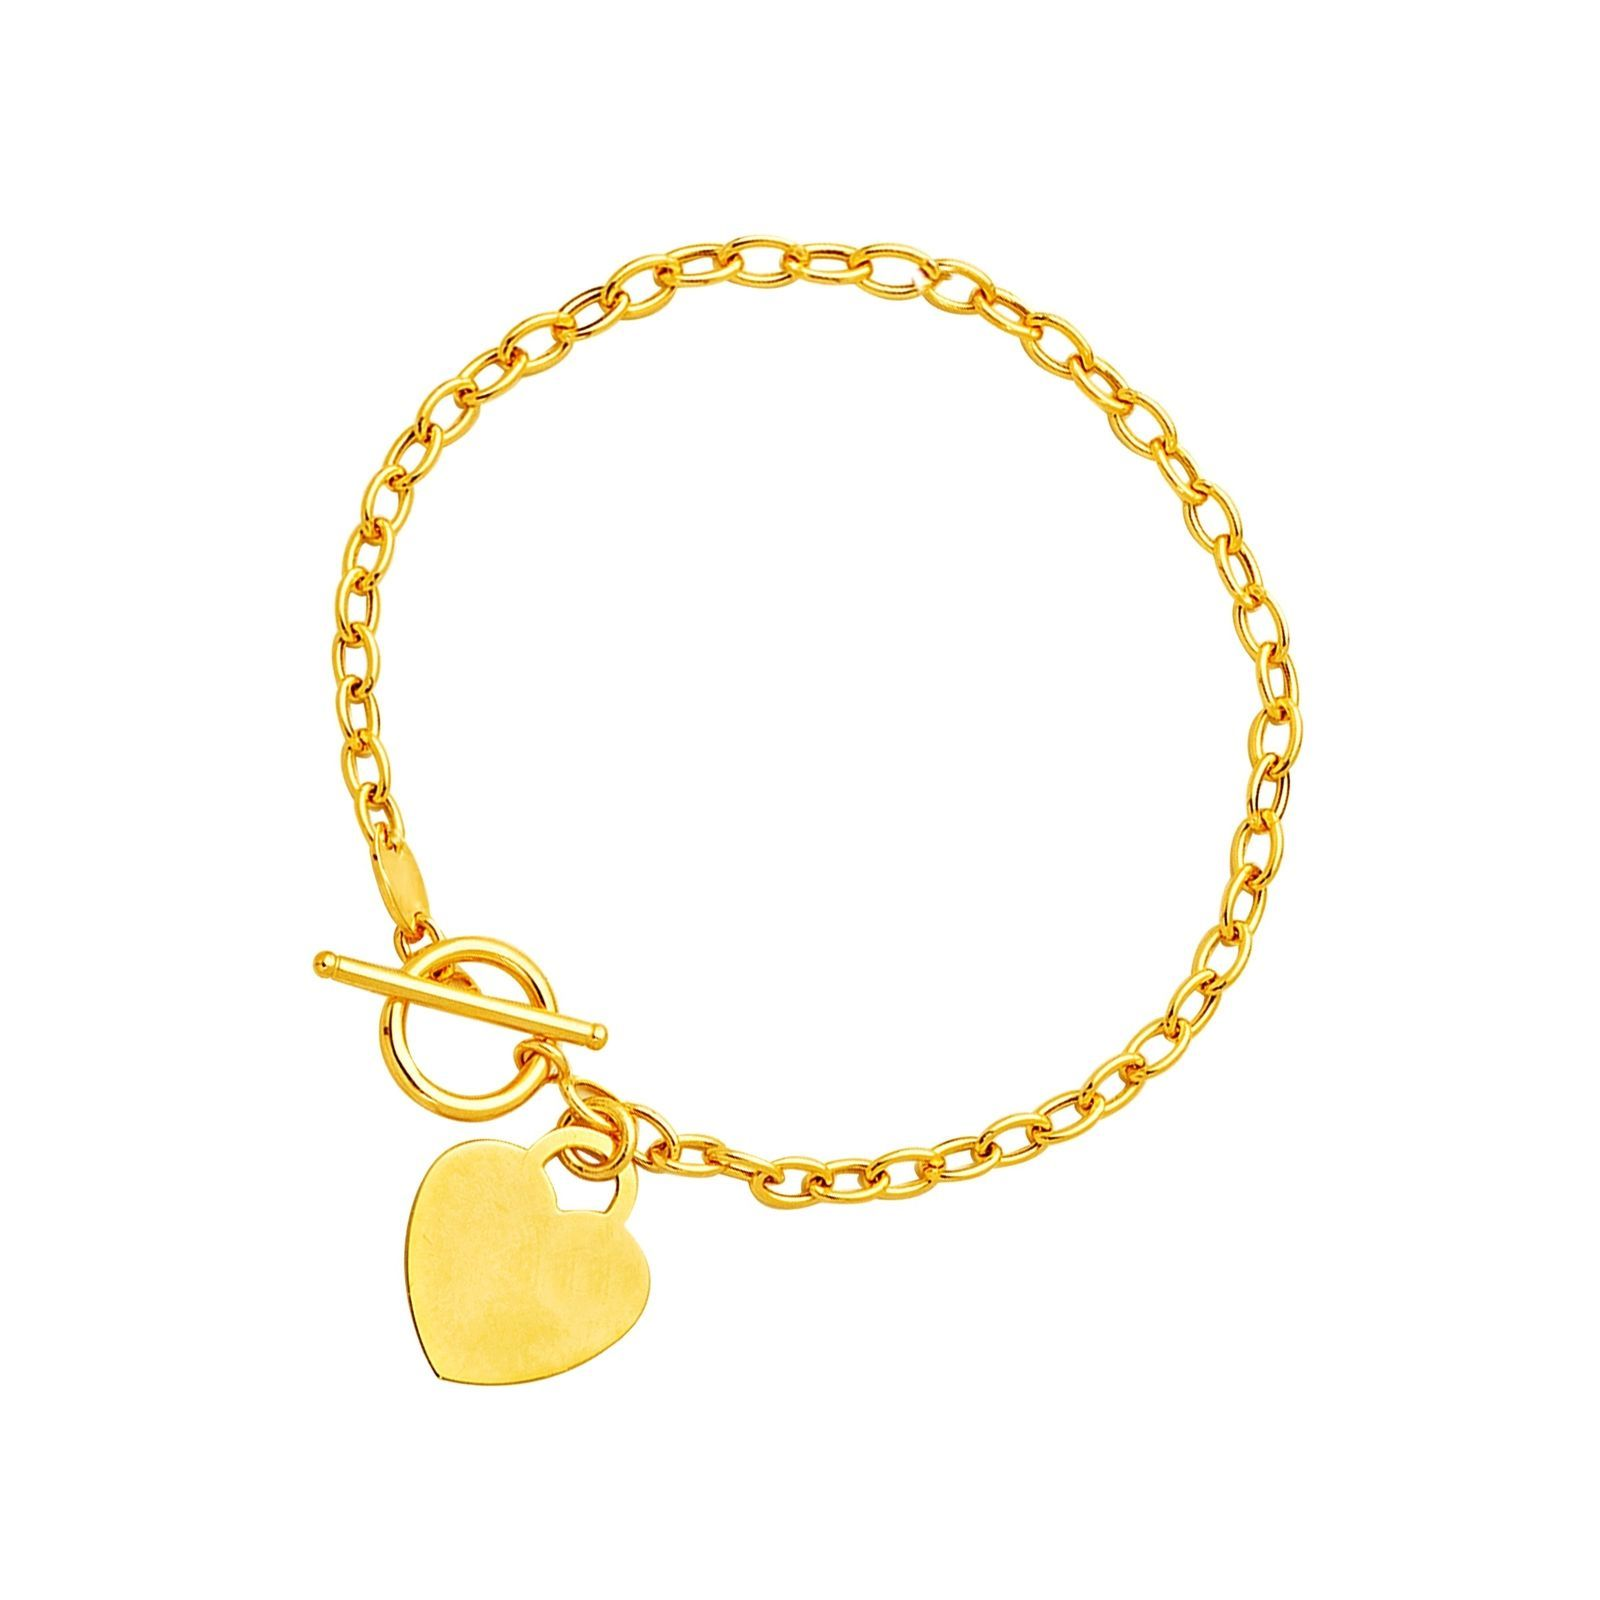 Toggle Bracelet with Heart Charm in 14k Yellow Gold Quality Jewelry Unique